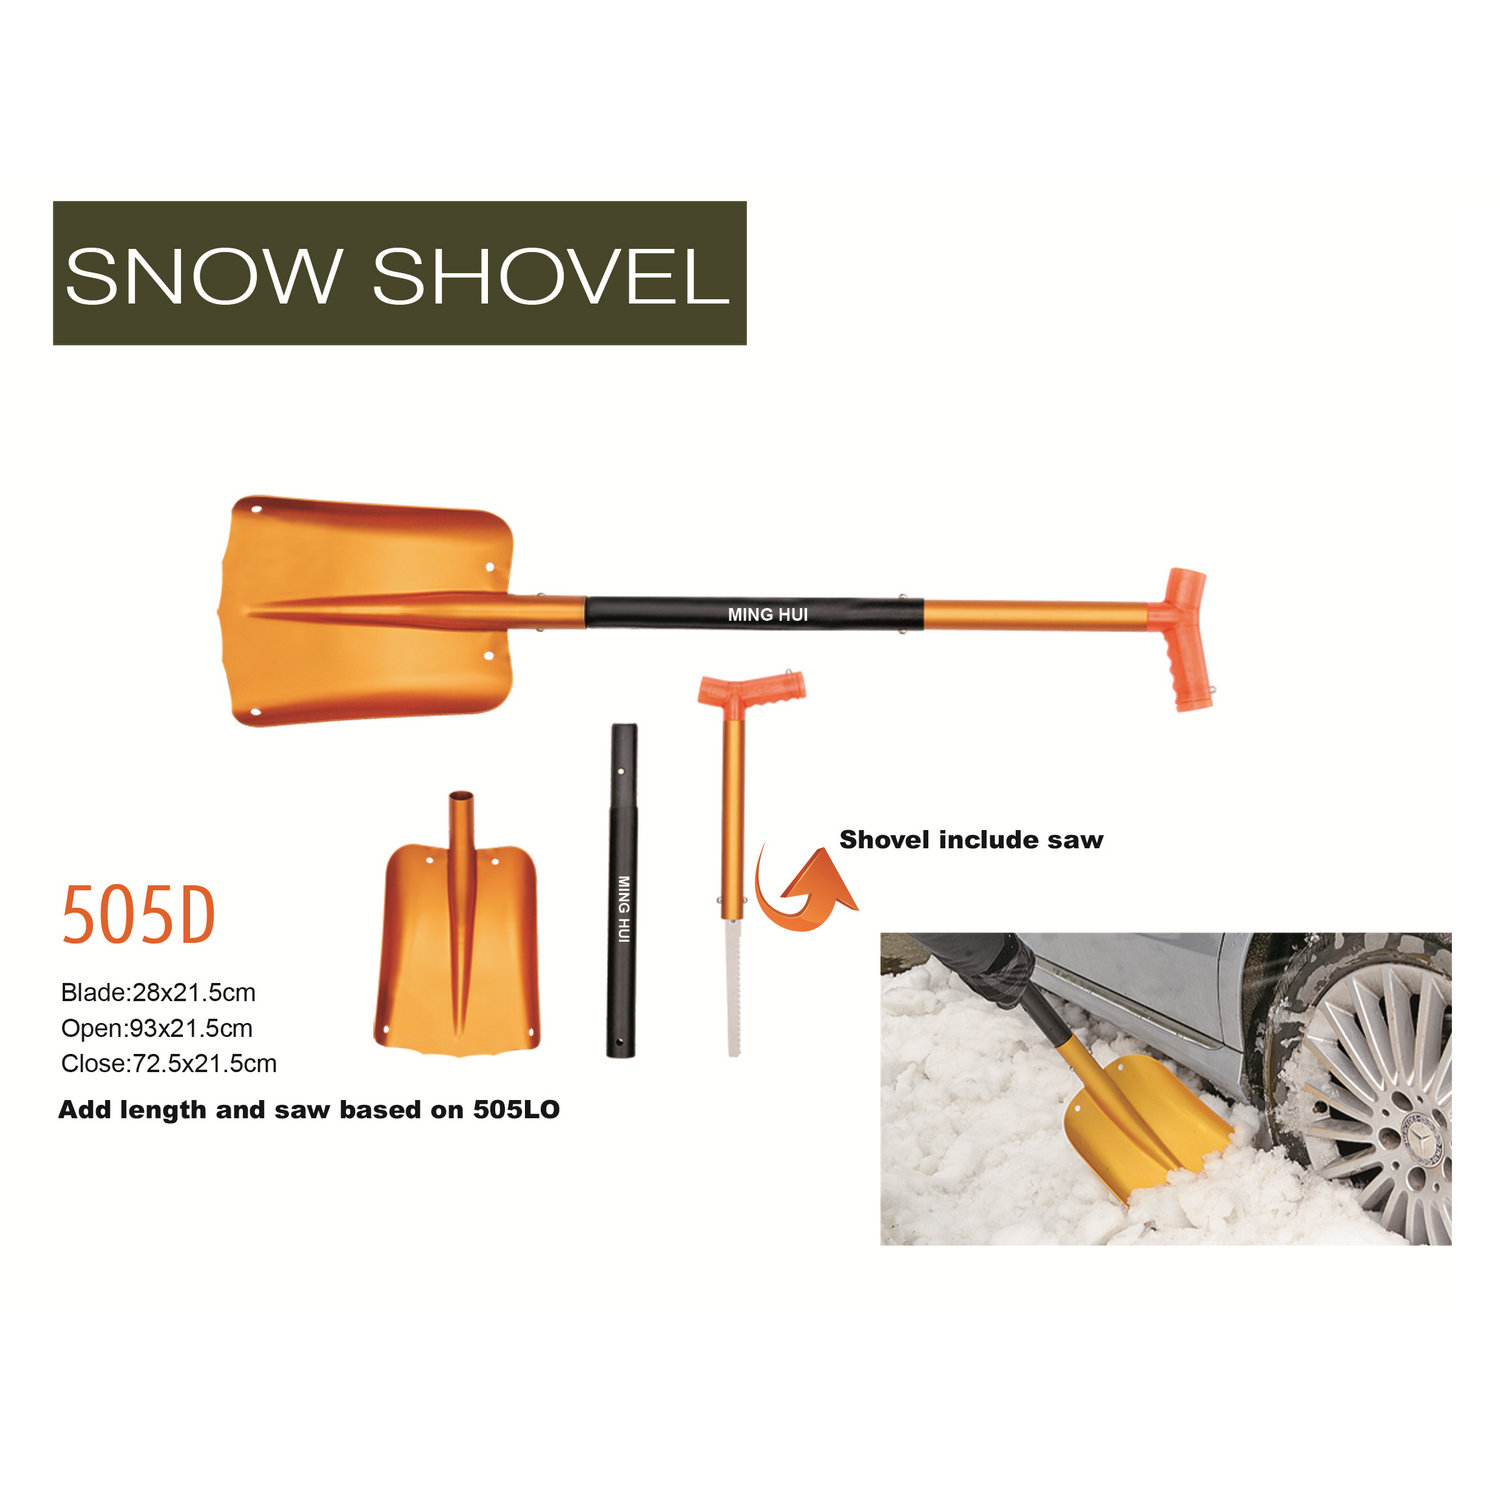 Snow shovel 505D